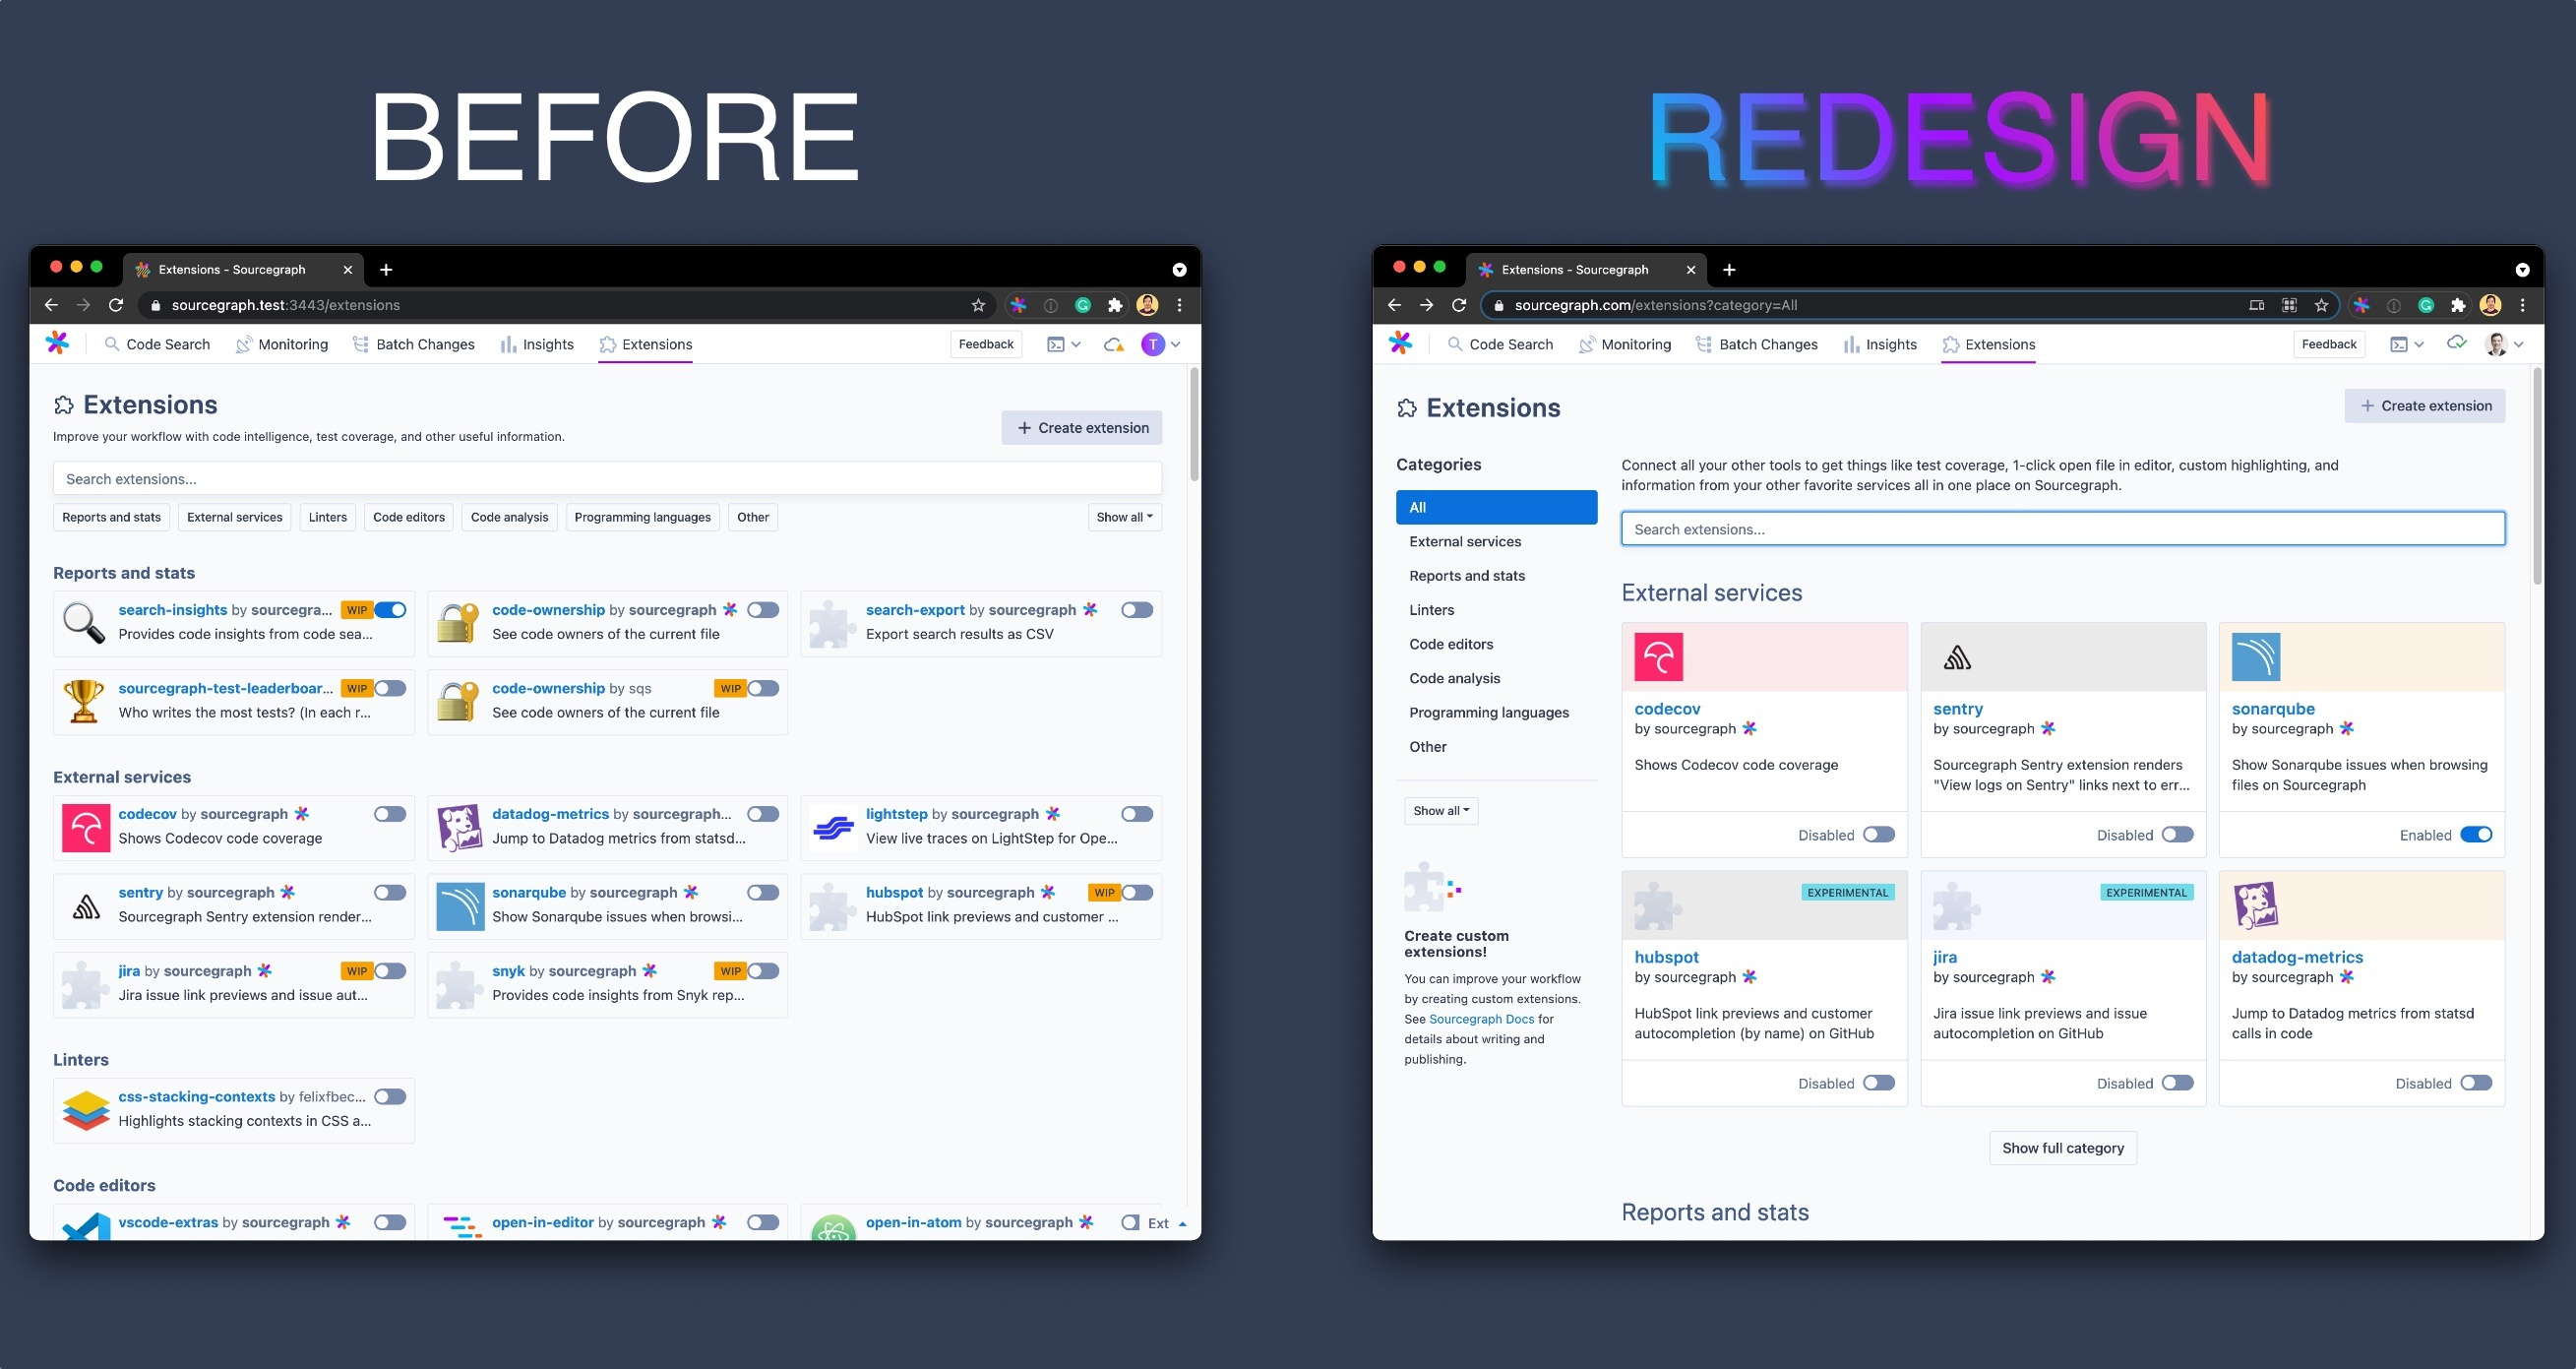 before and after screenshot of the registry redesign